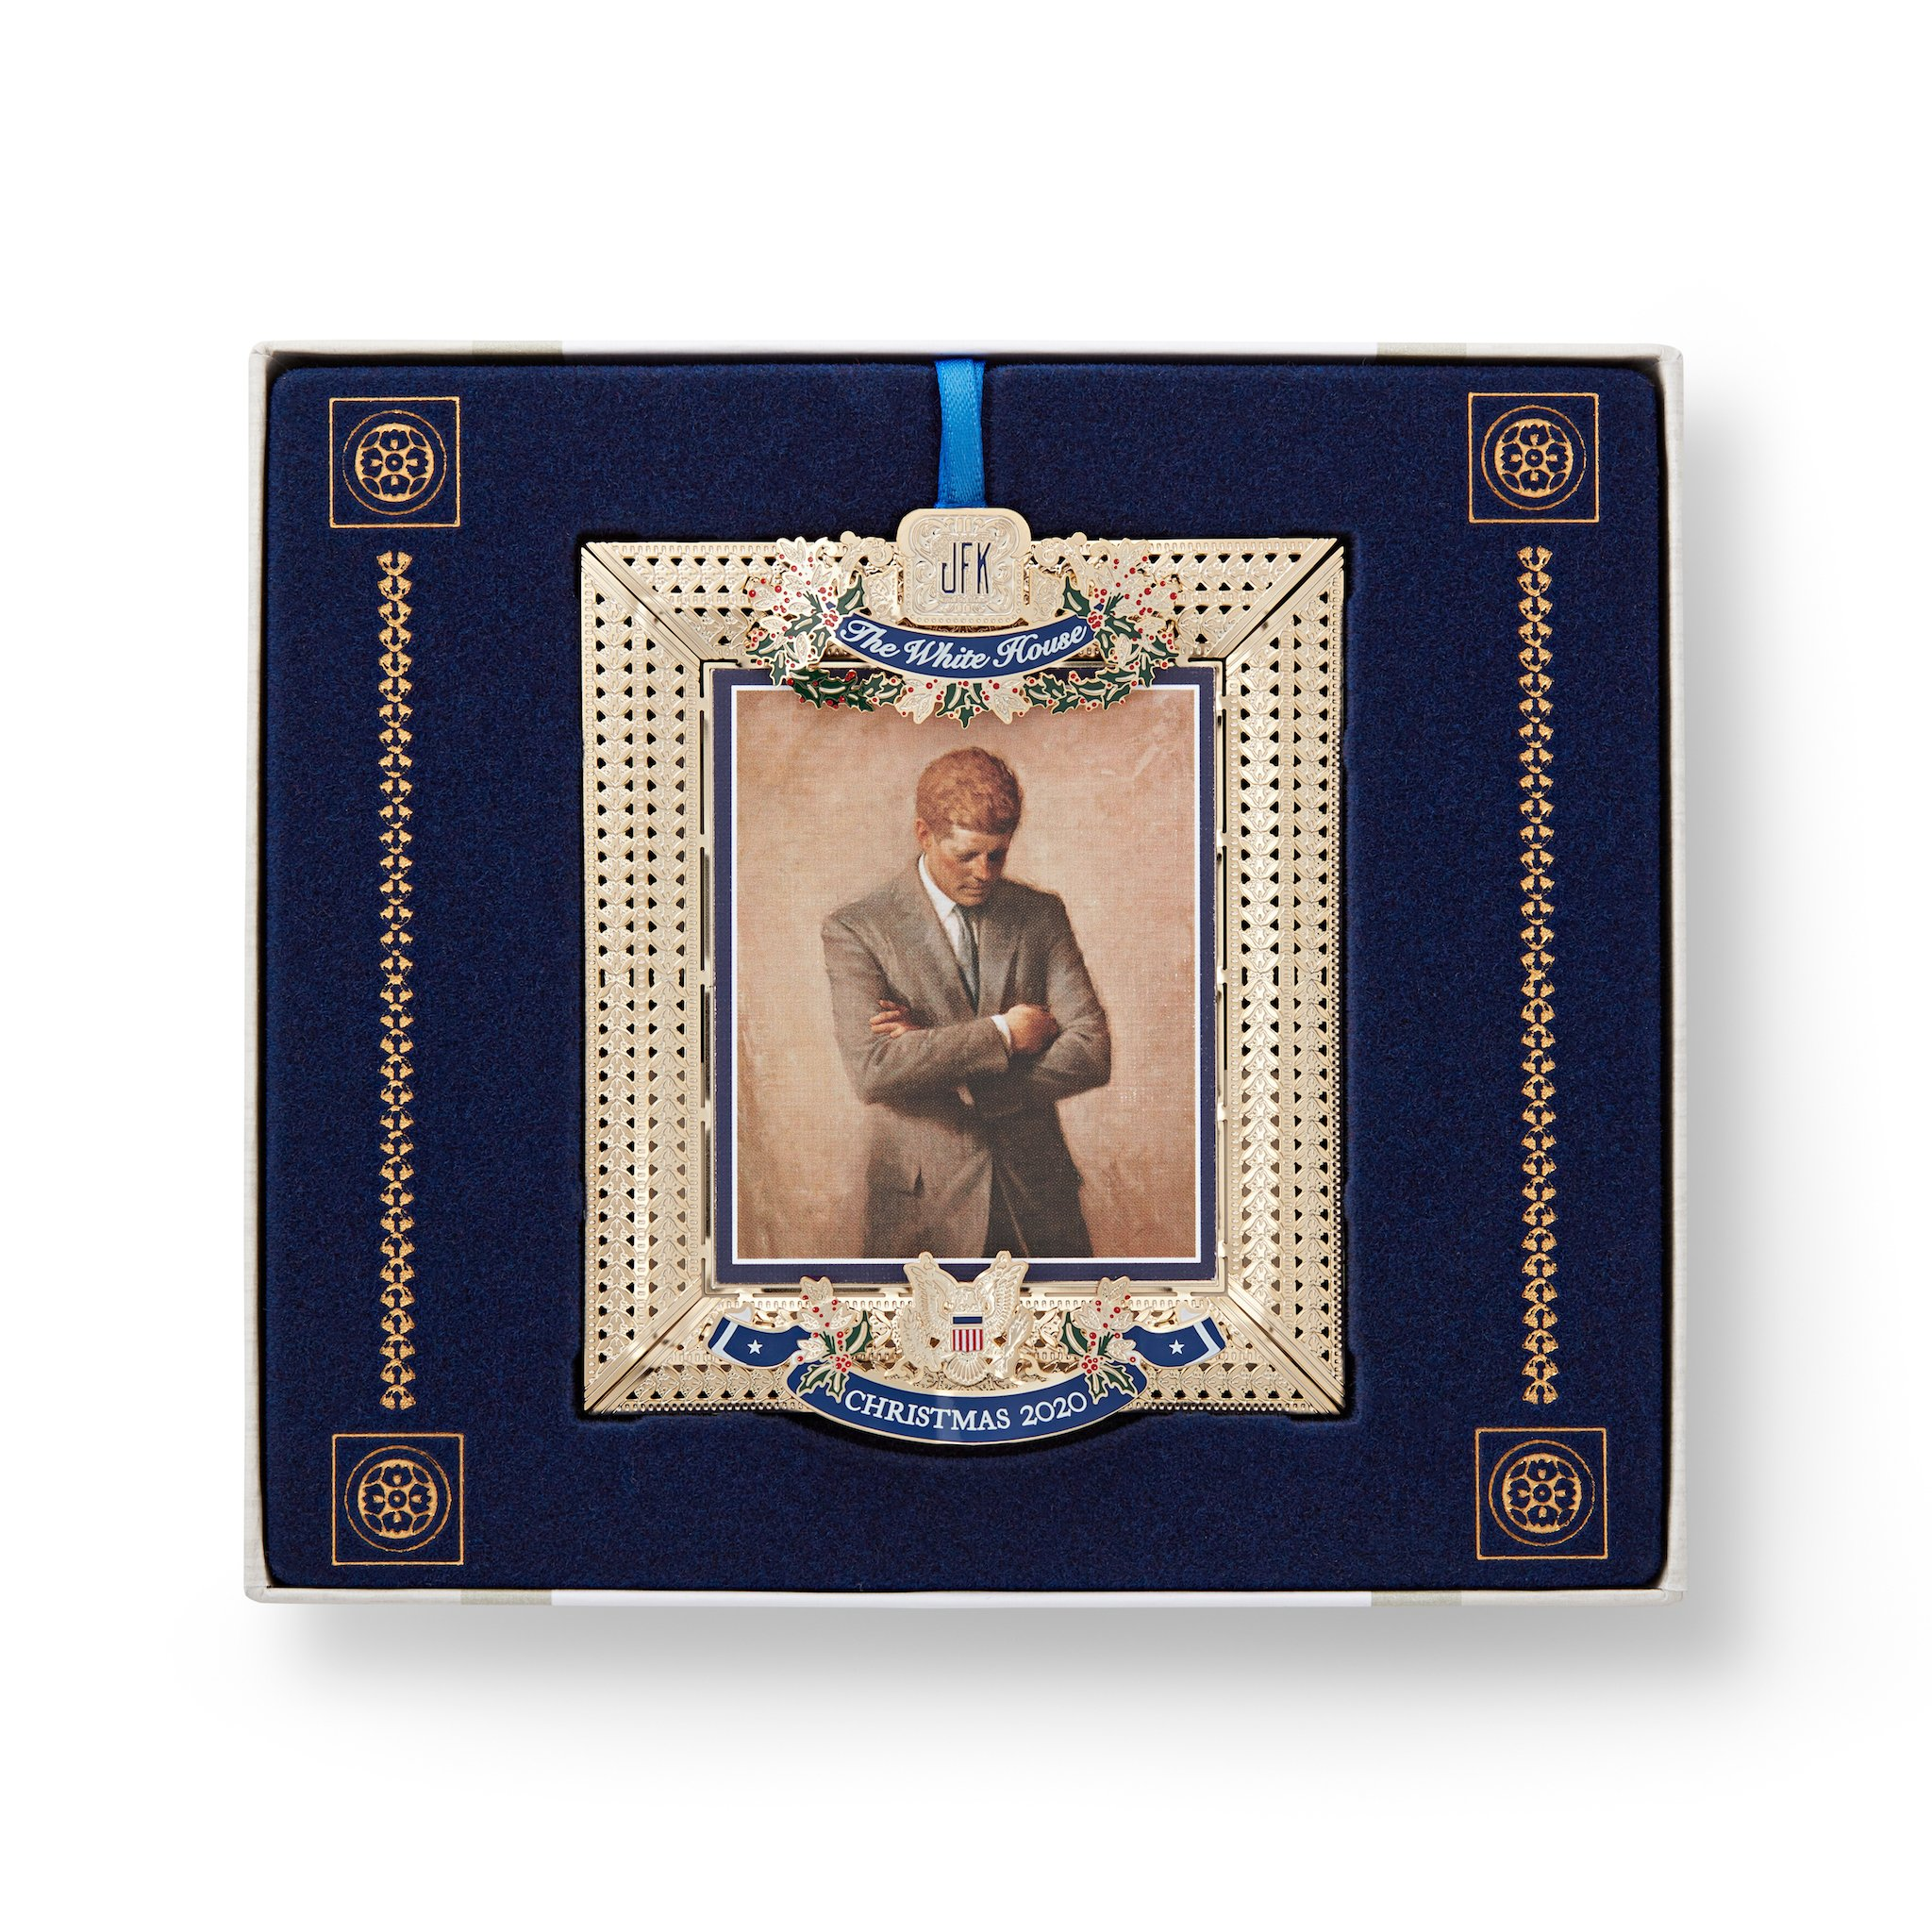 Trump 2020 Christmas Ornament Collection This Year's White House Christmas Ornament Honors John F. Kennedy